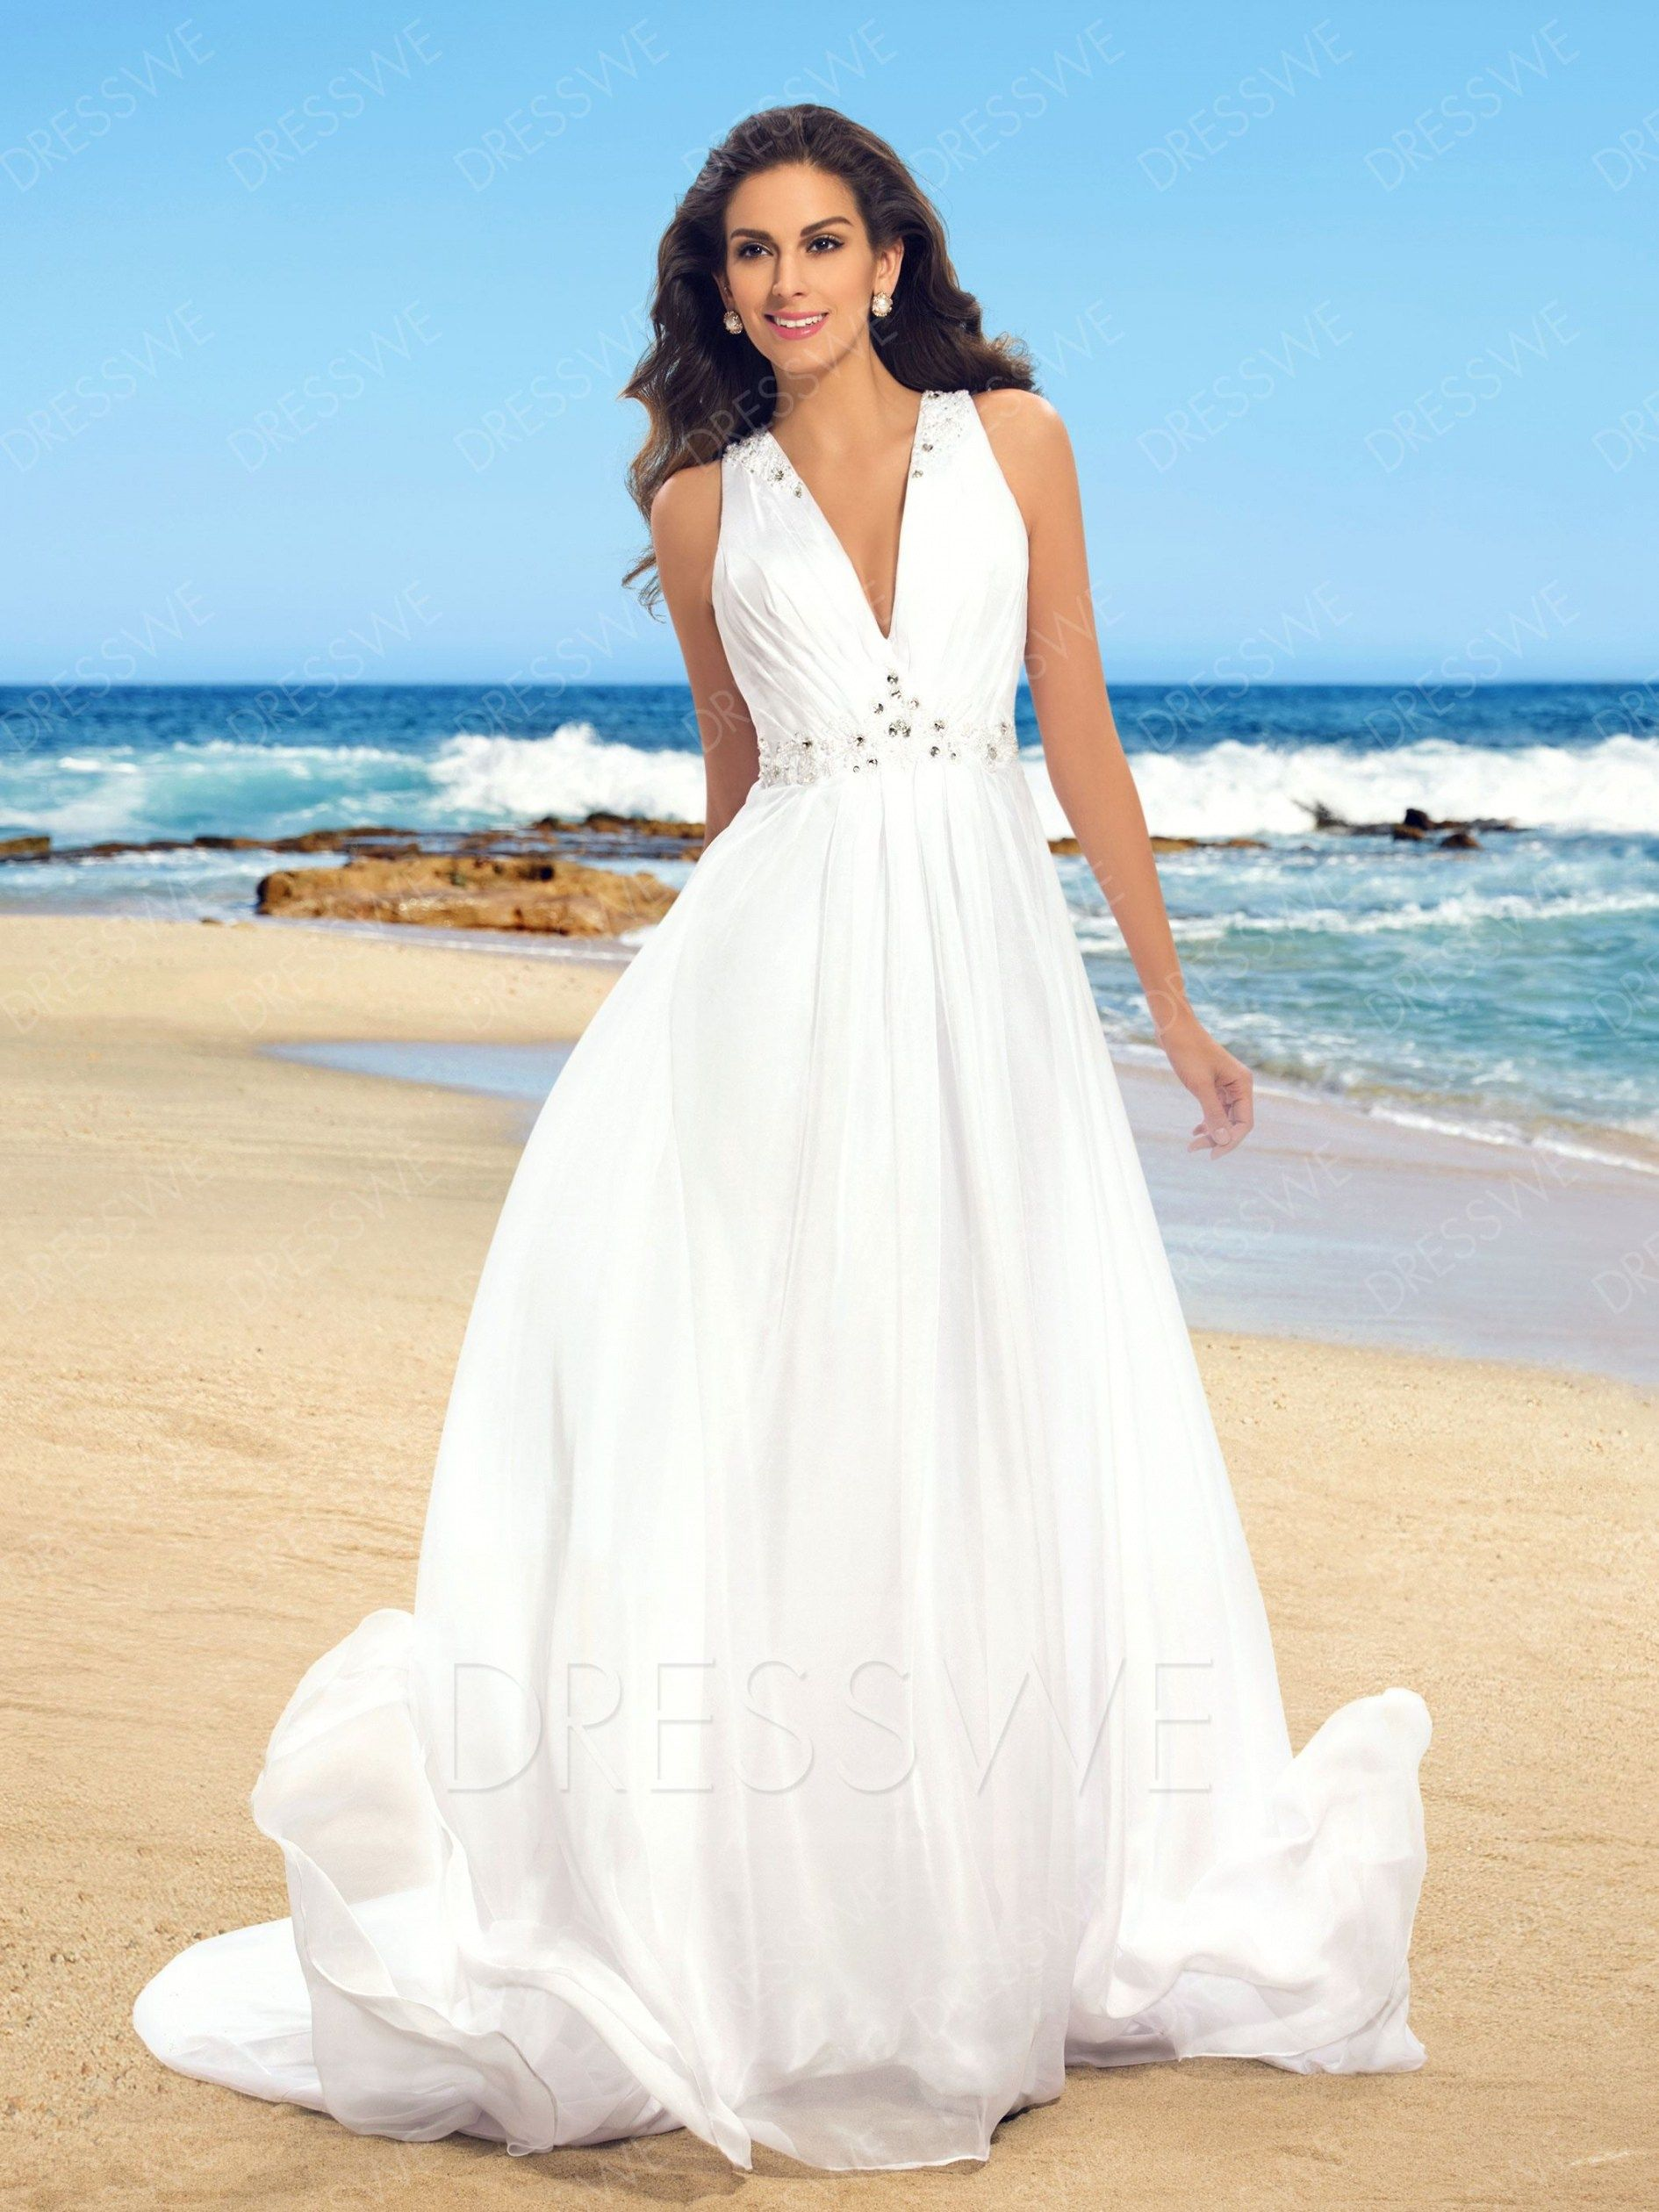 54 Awesome White Linen Dresses For Beach Weddings Graphics Wedding Dress Gallery Beach Wedding Gown Simple Wedding Dress Beach Beach Wedding Dress